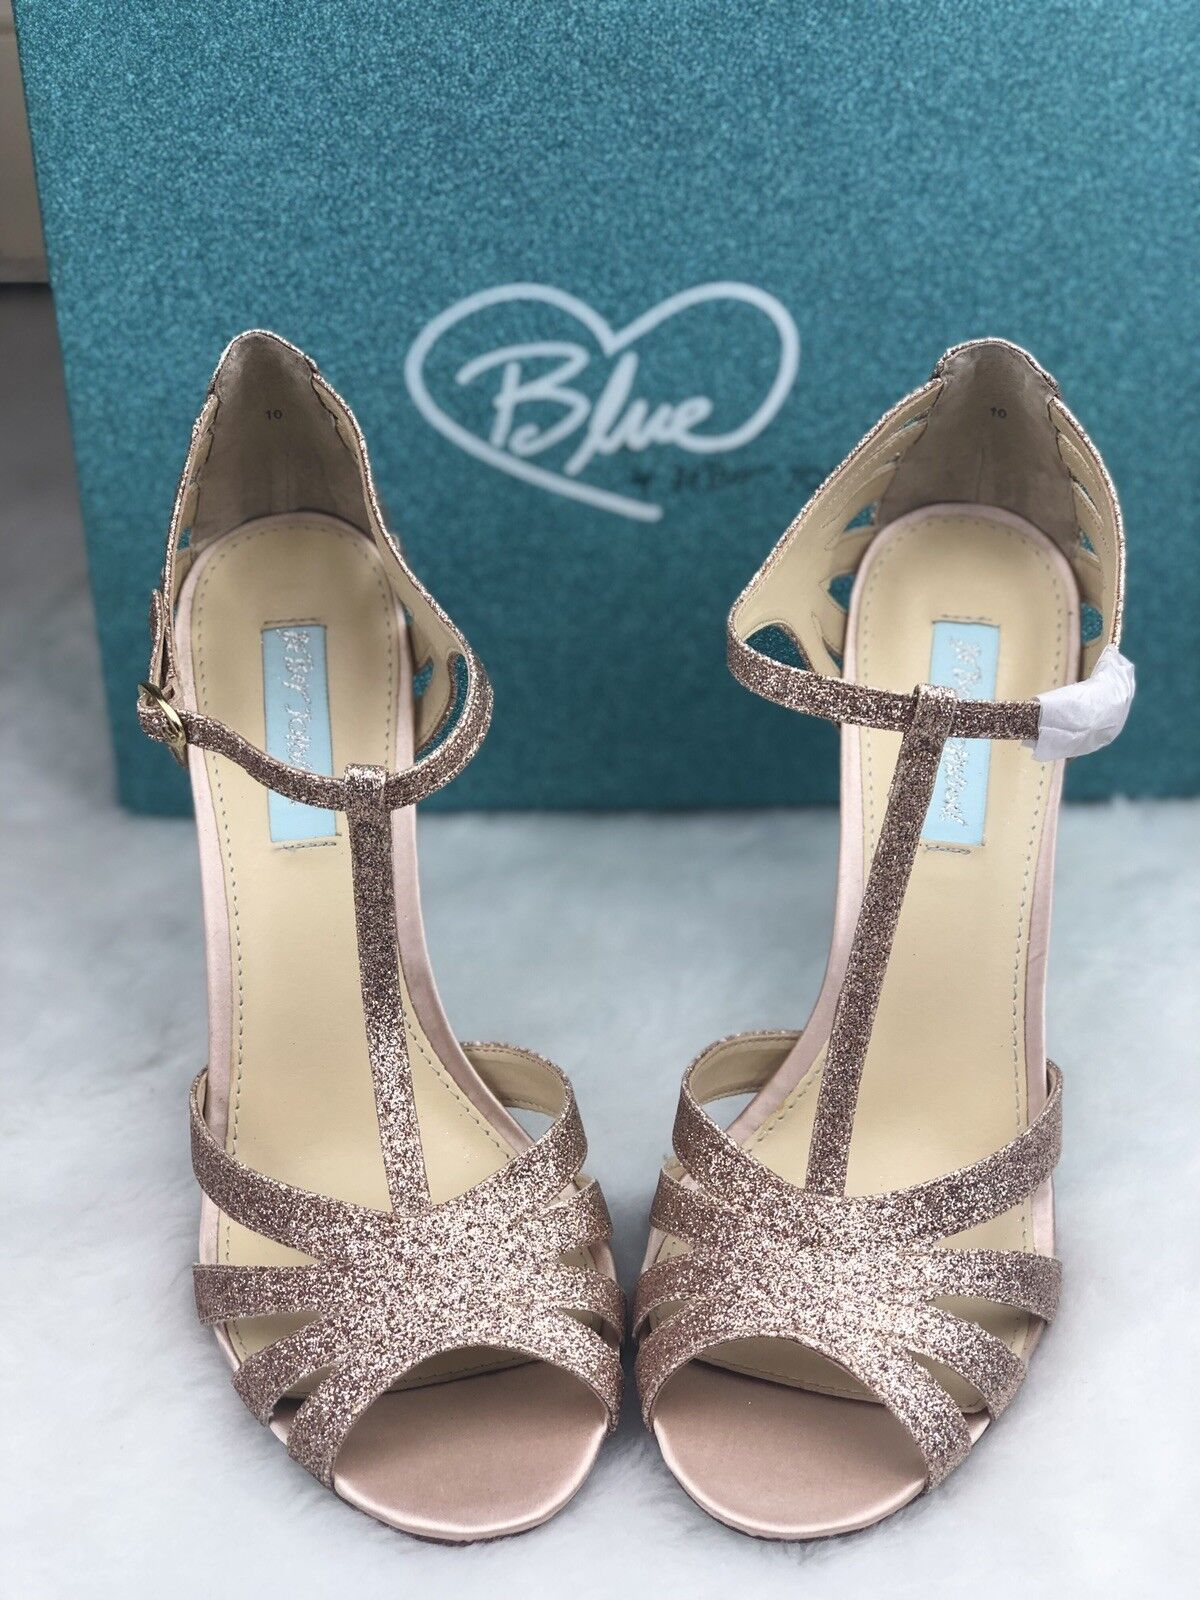 bluee by Betsey Johnson Tee Dress Sandals Champagne, 10 US NEW Wedding Formal